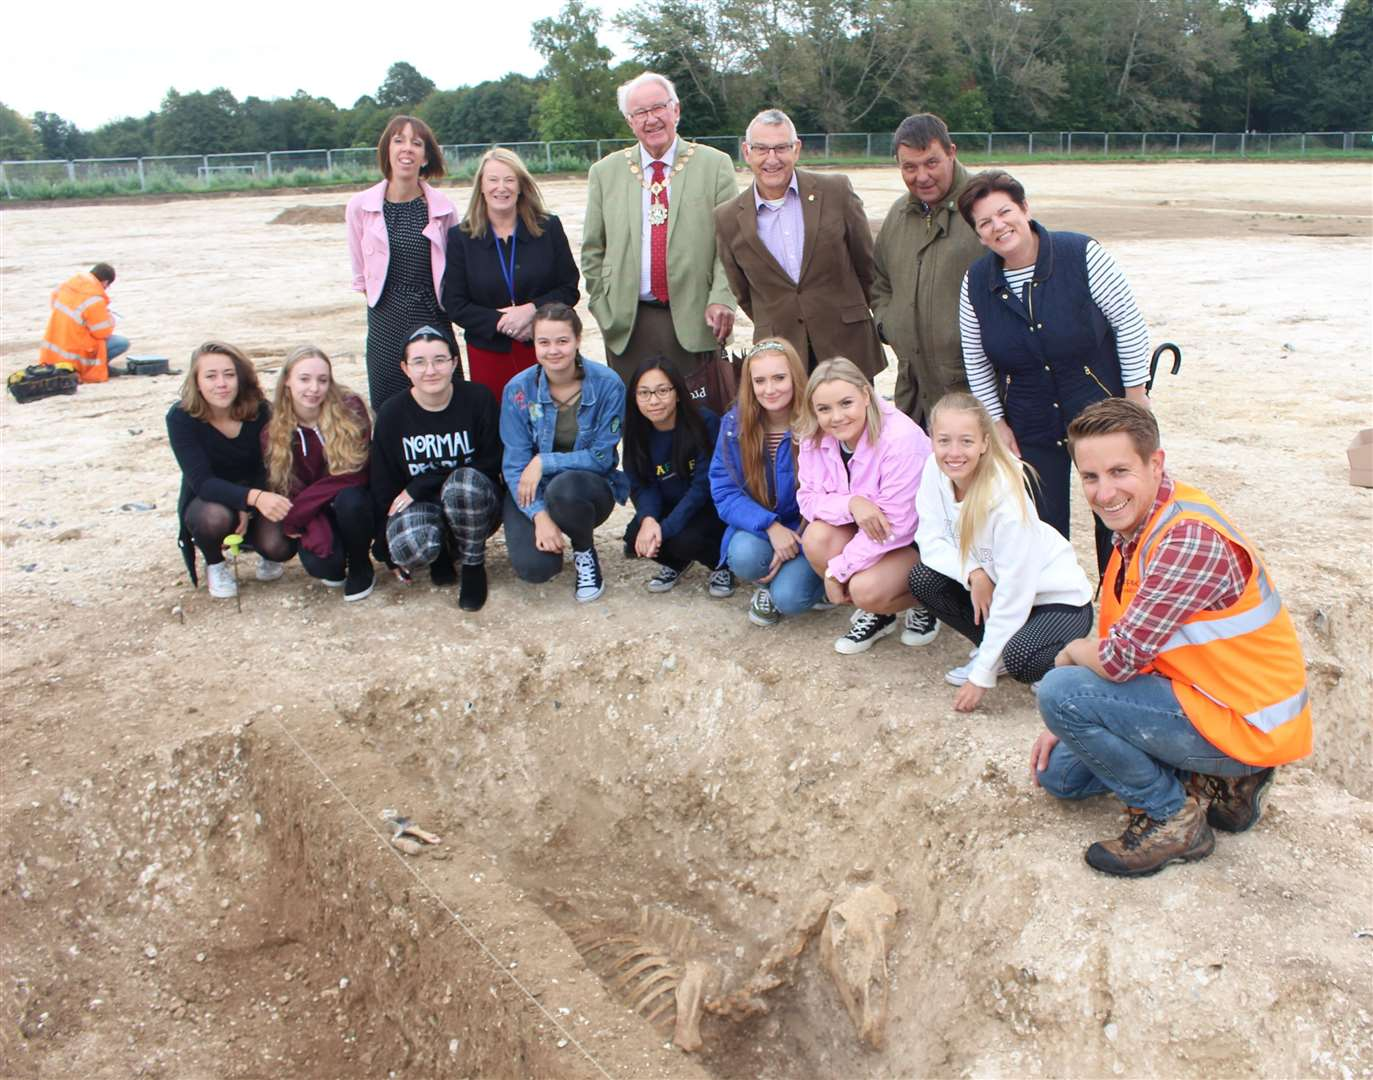 Dig project officer Rob Brooks, showing the skeleton of an Iron Age horse to Mildenhall Academy students, and principal Susan Byles with official visitors including Forest Heath councillors James Waters and Ruth Bowman